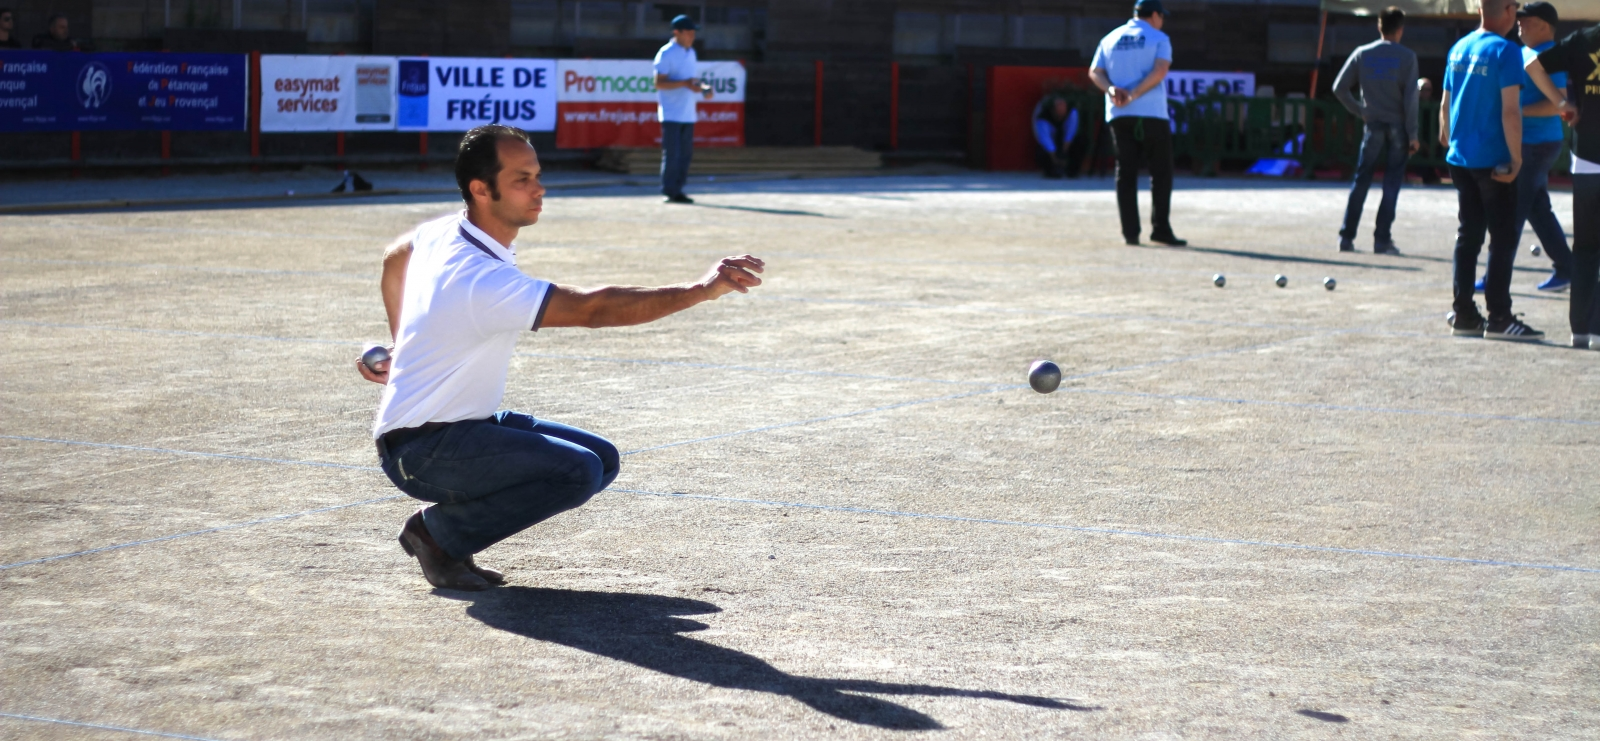 Festival International de pétanque Laurent Barbero / Ville de Fréjus